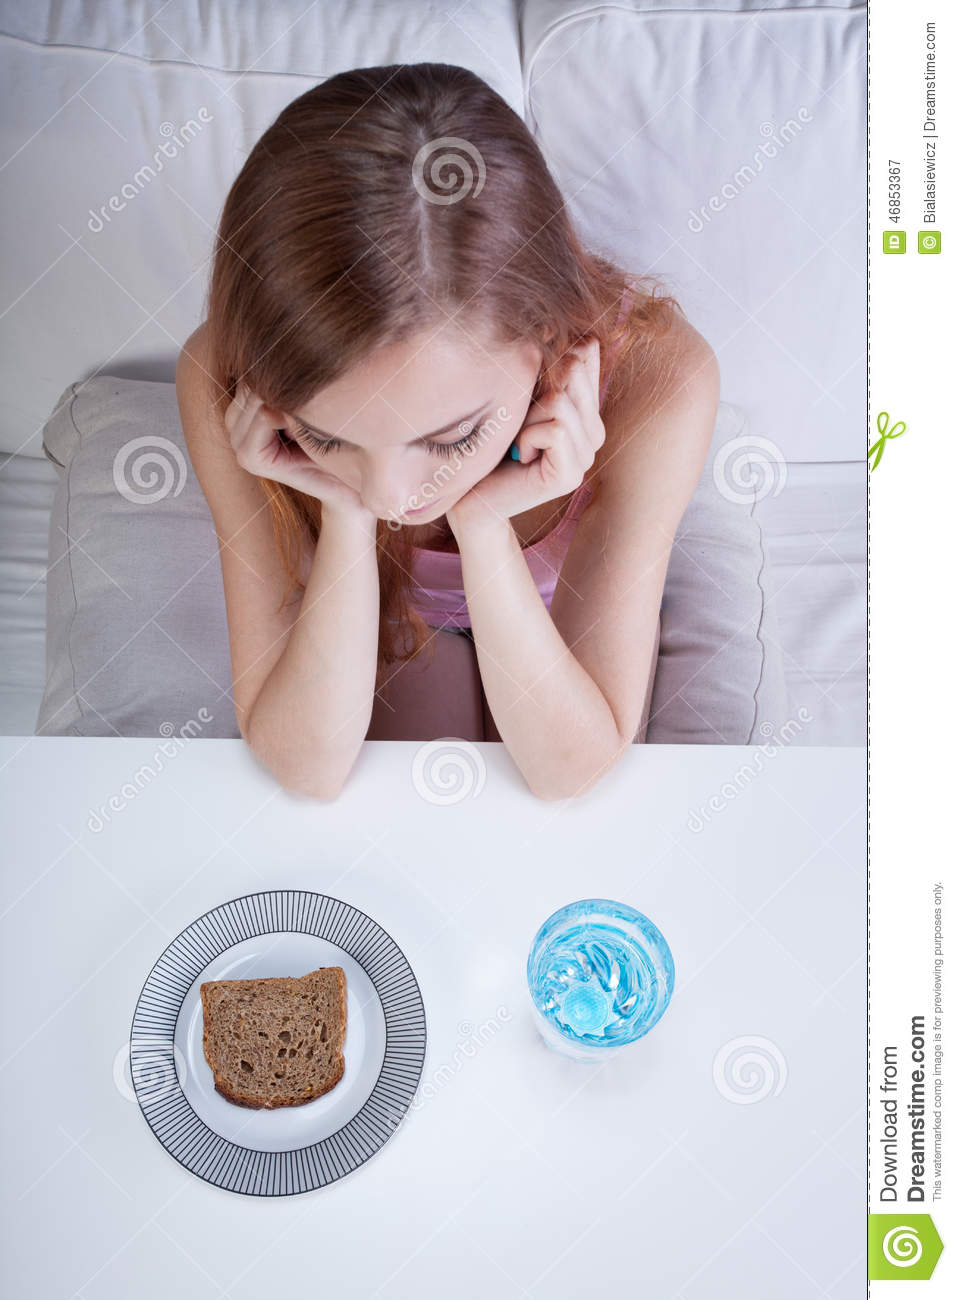 Girl On A Bread And Water Diet Stock Image Image Of Person Girl 46853367